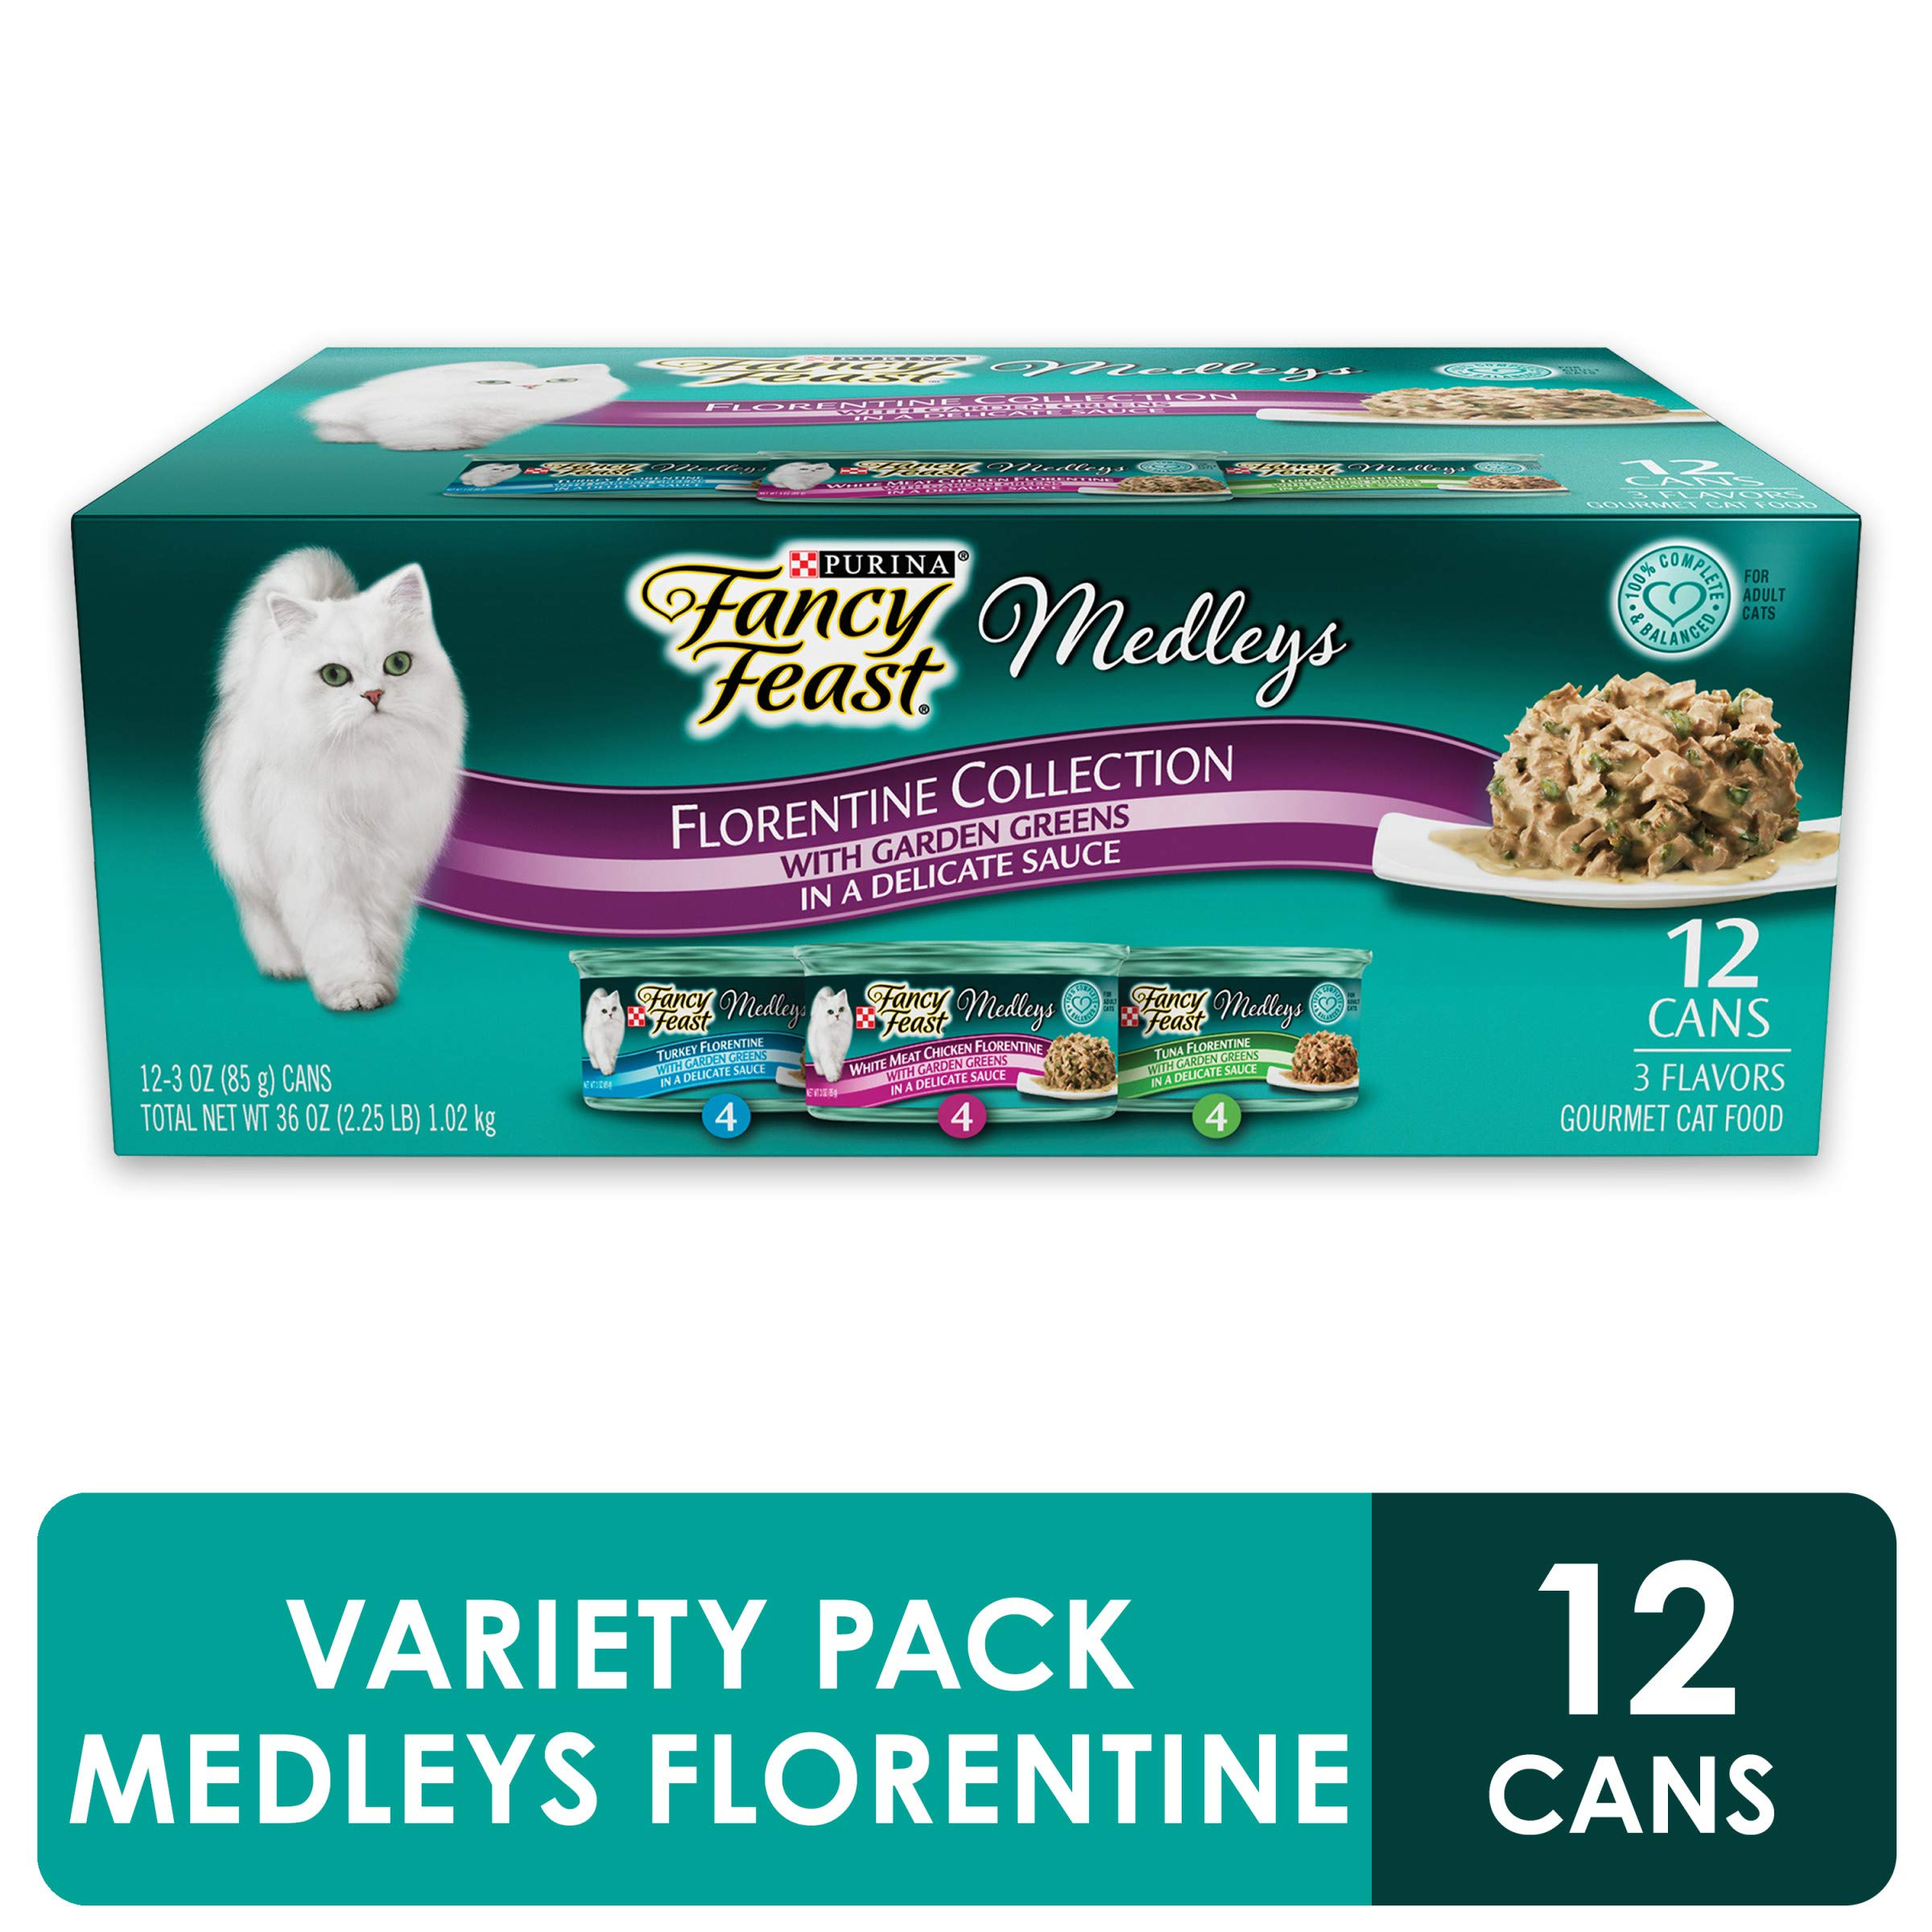 Purina Fancy Feast Gravy Wet Cat Food Variety Pack, Medleys Florentine Collection - (2 Packs of 12) 3 oz. Cans by Purina Fancy Feast